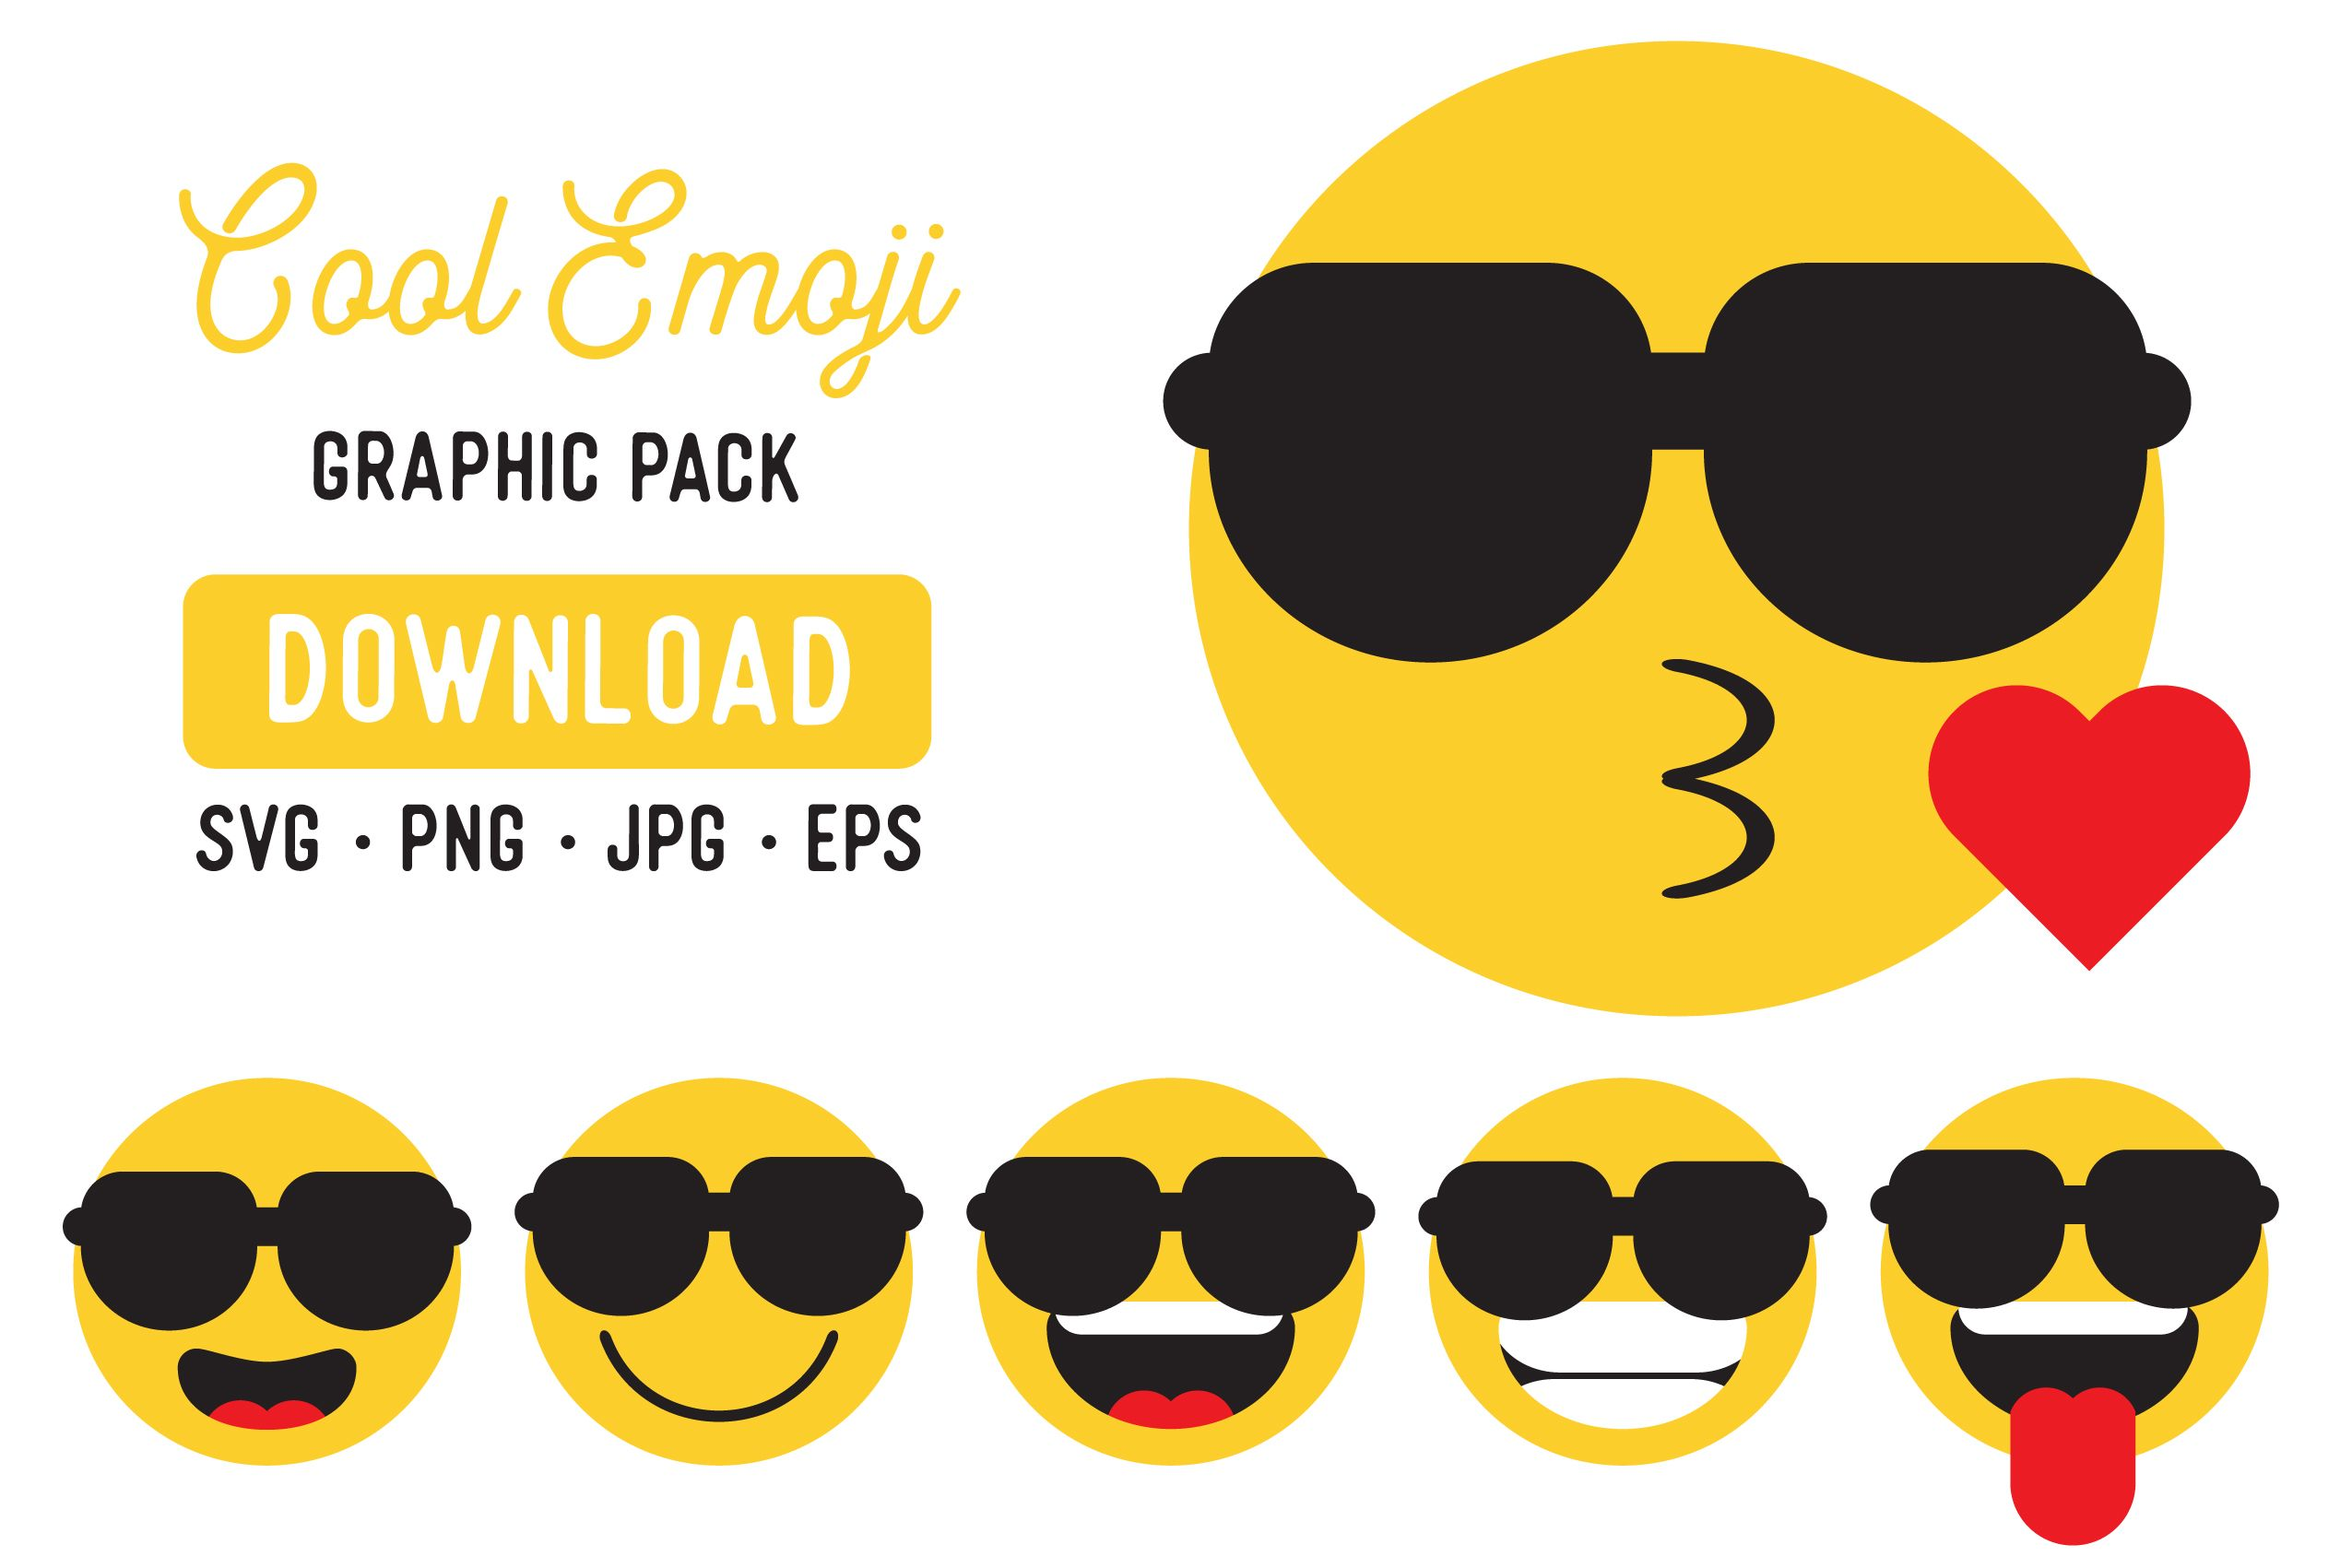 Cool Emoji Vector Graphic Clipart Pack (Graphic) by The